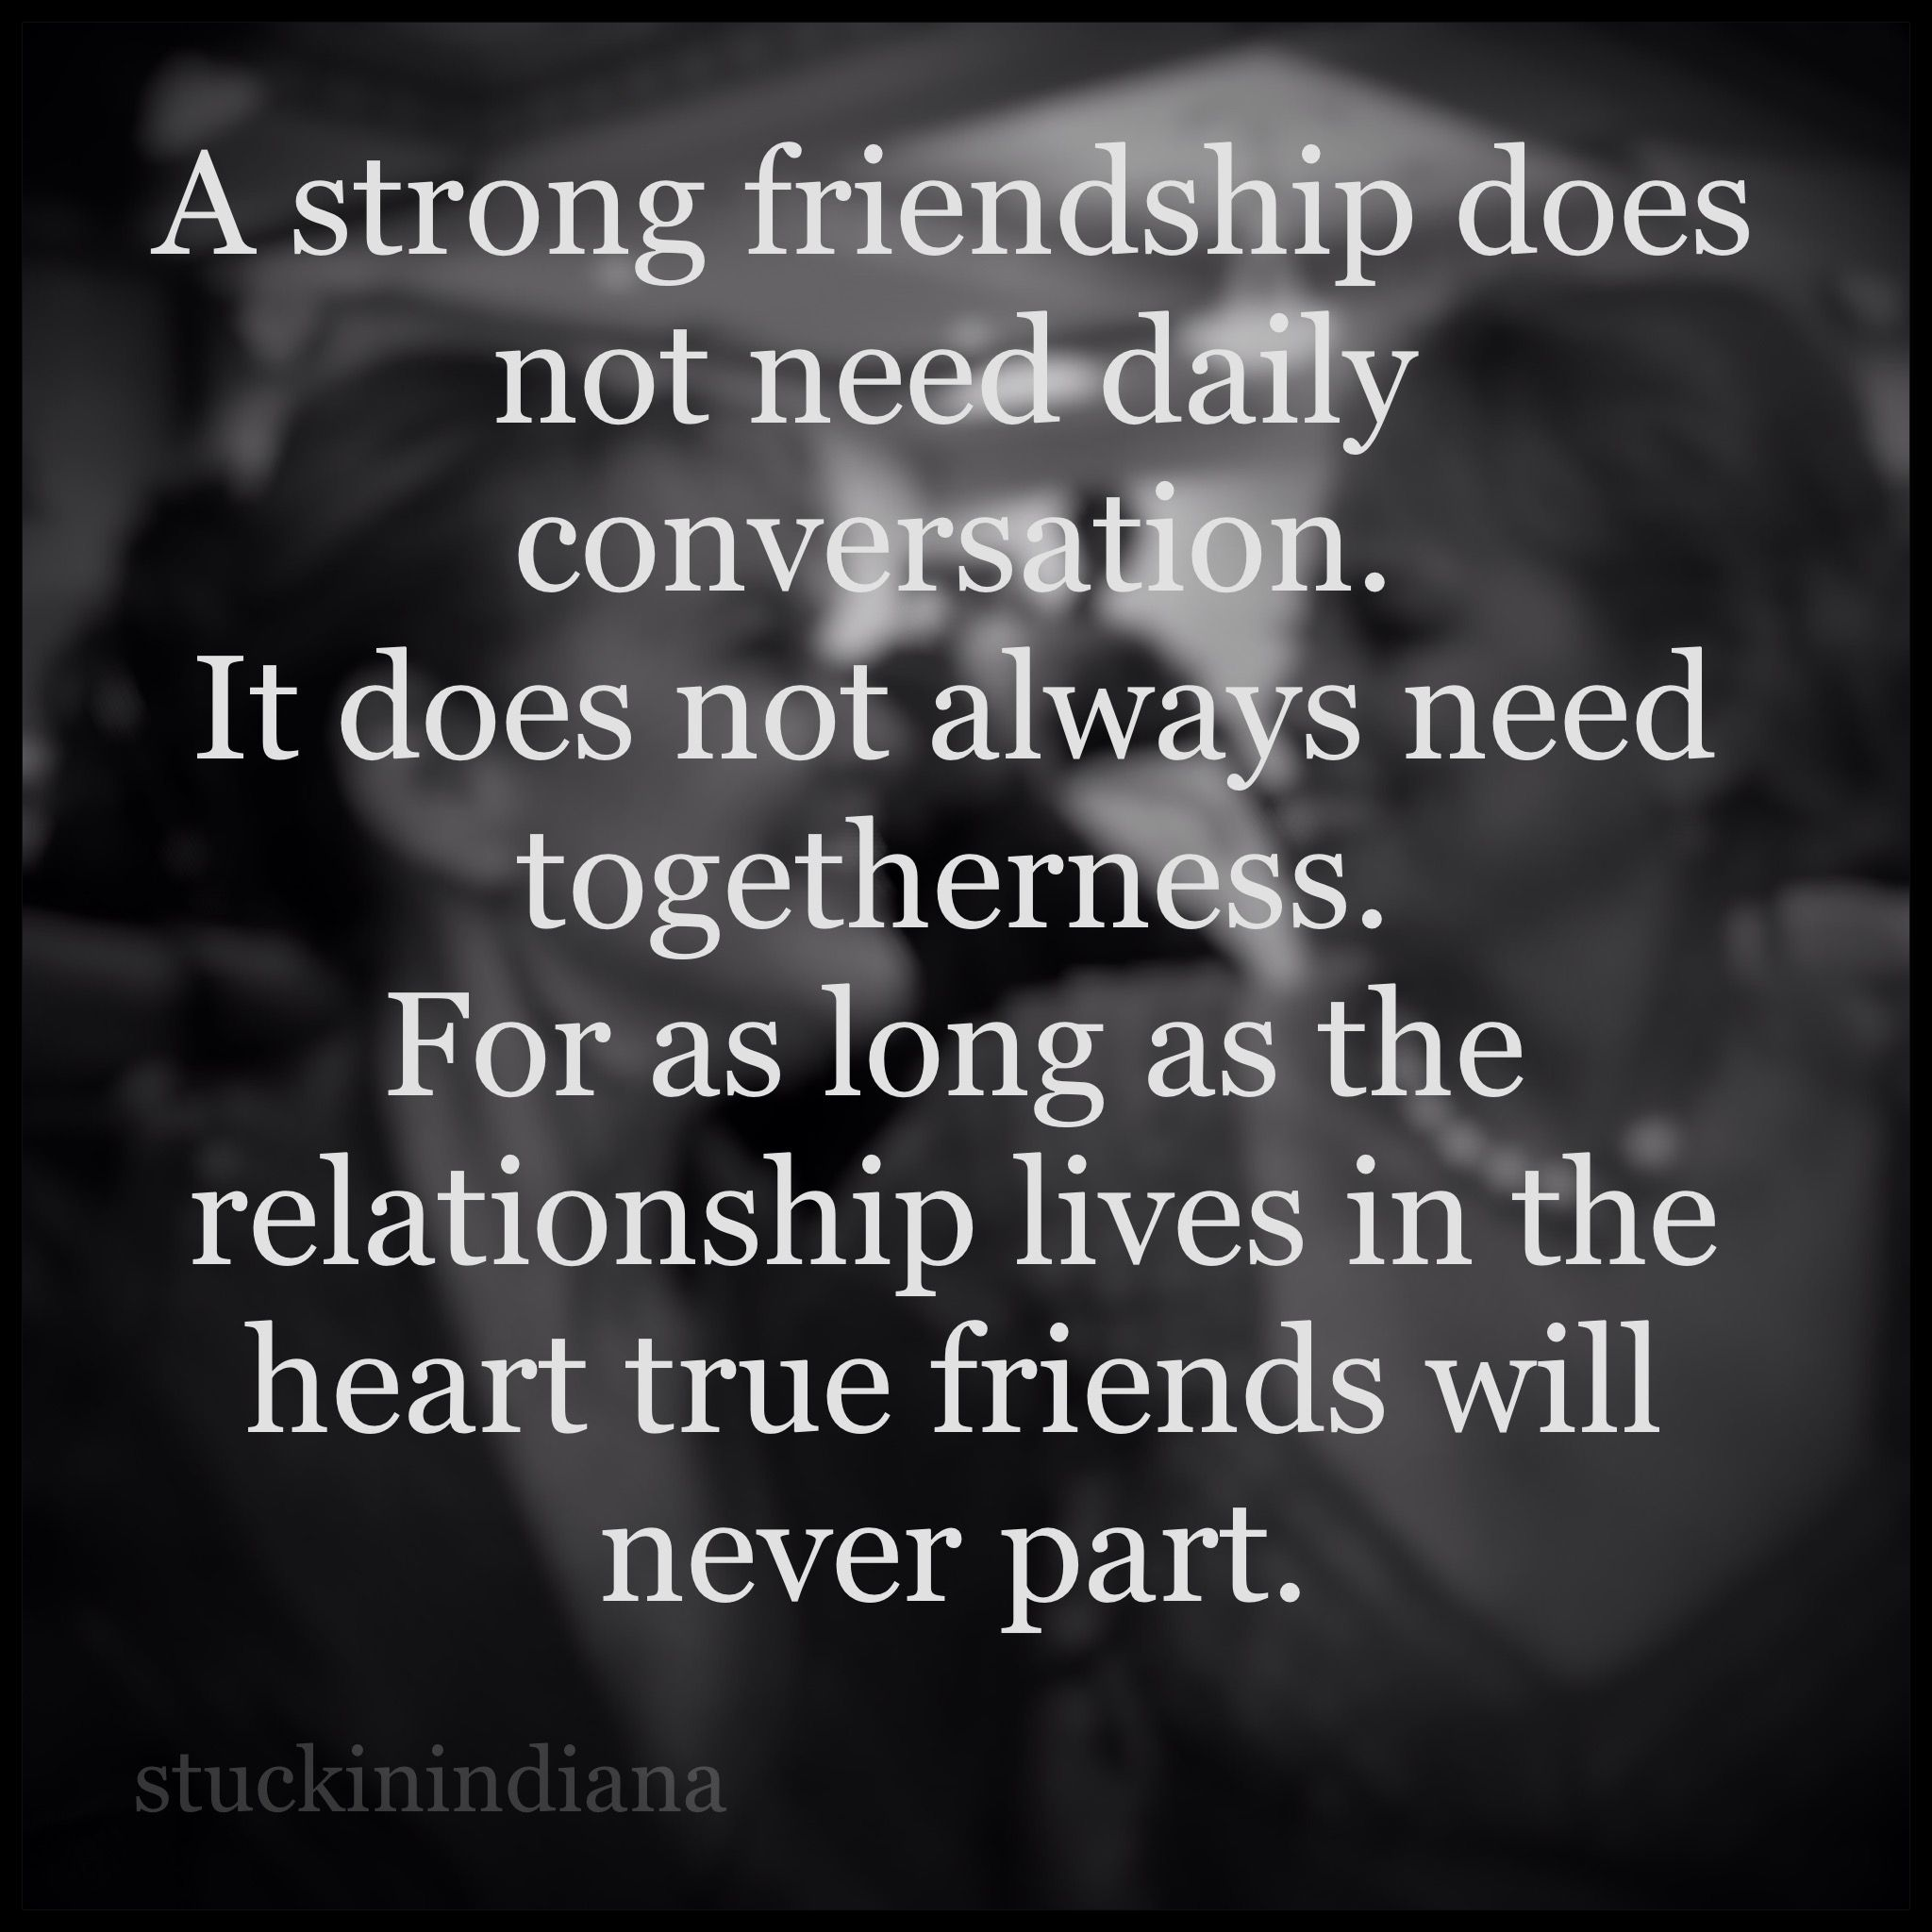 Quotes About Strong Friendships A Strong Friendship Does Not Need Daily Conversationit Does Not